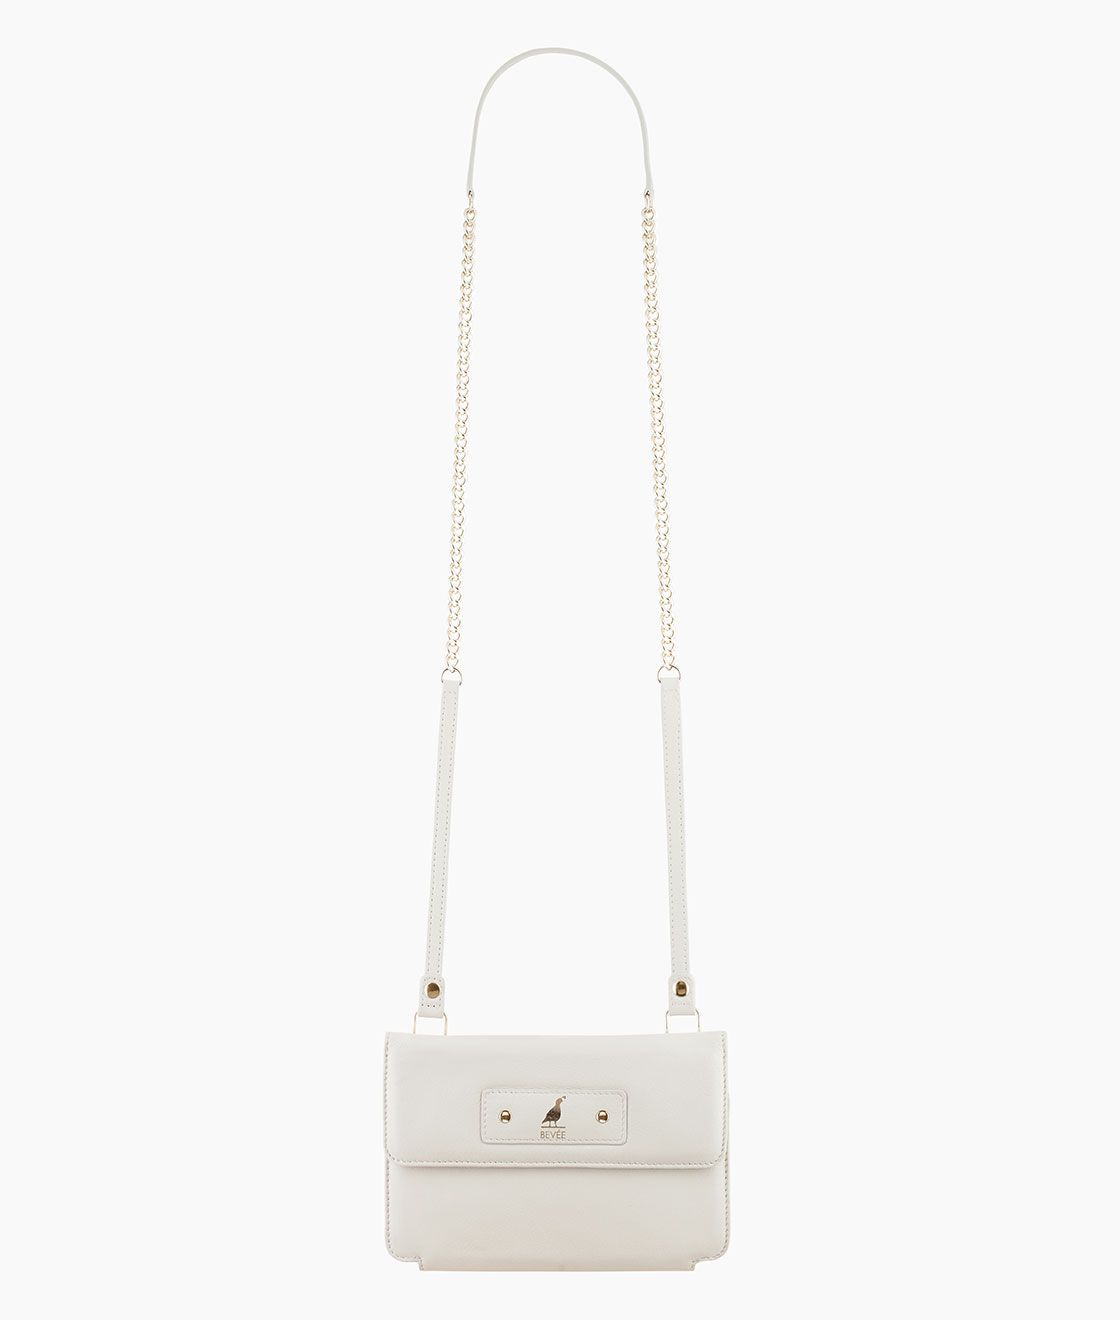 We think this is the prefect small, sleek honeymoon bag - carries everything you need and nothing you don't.